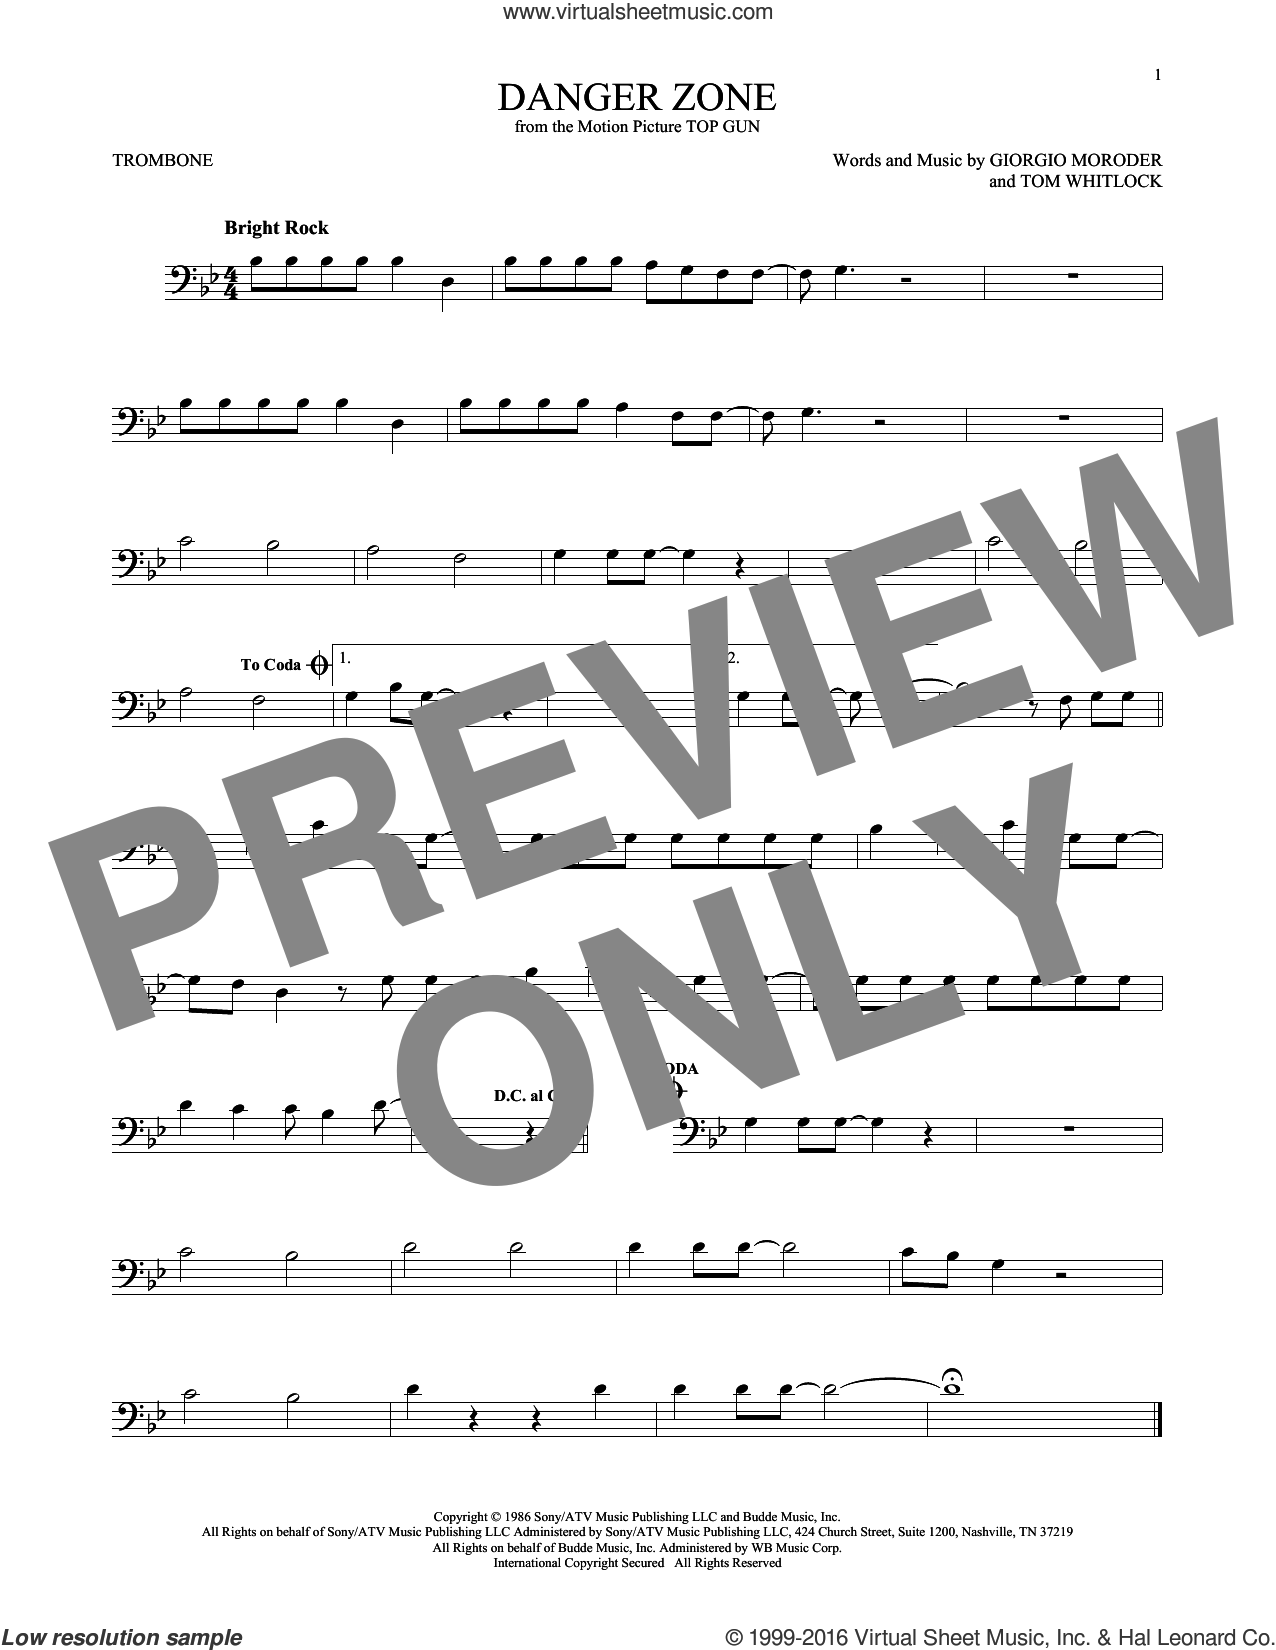 Danger Zone sheet music for trombone solo by Tom Whitlock, Kenny Loggins and Giorgio Moroder. Score Image Preview.